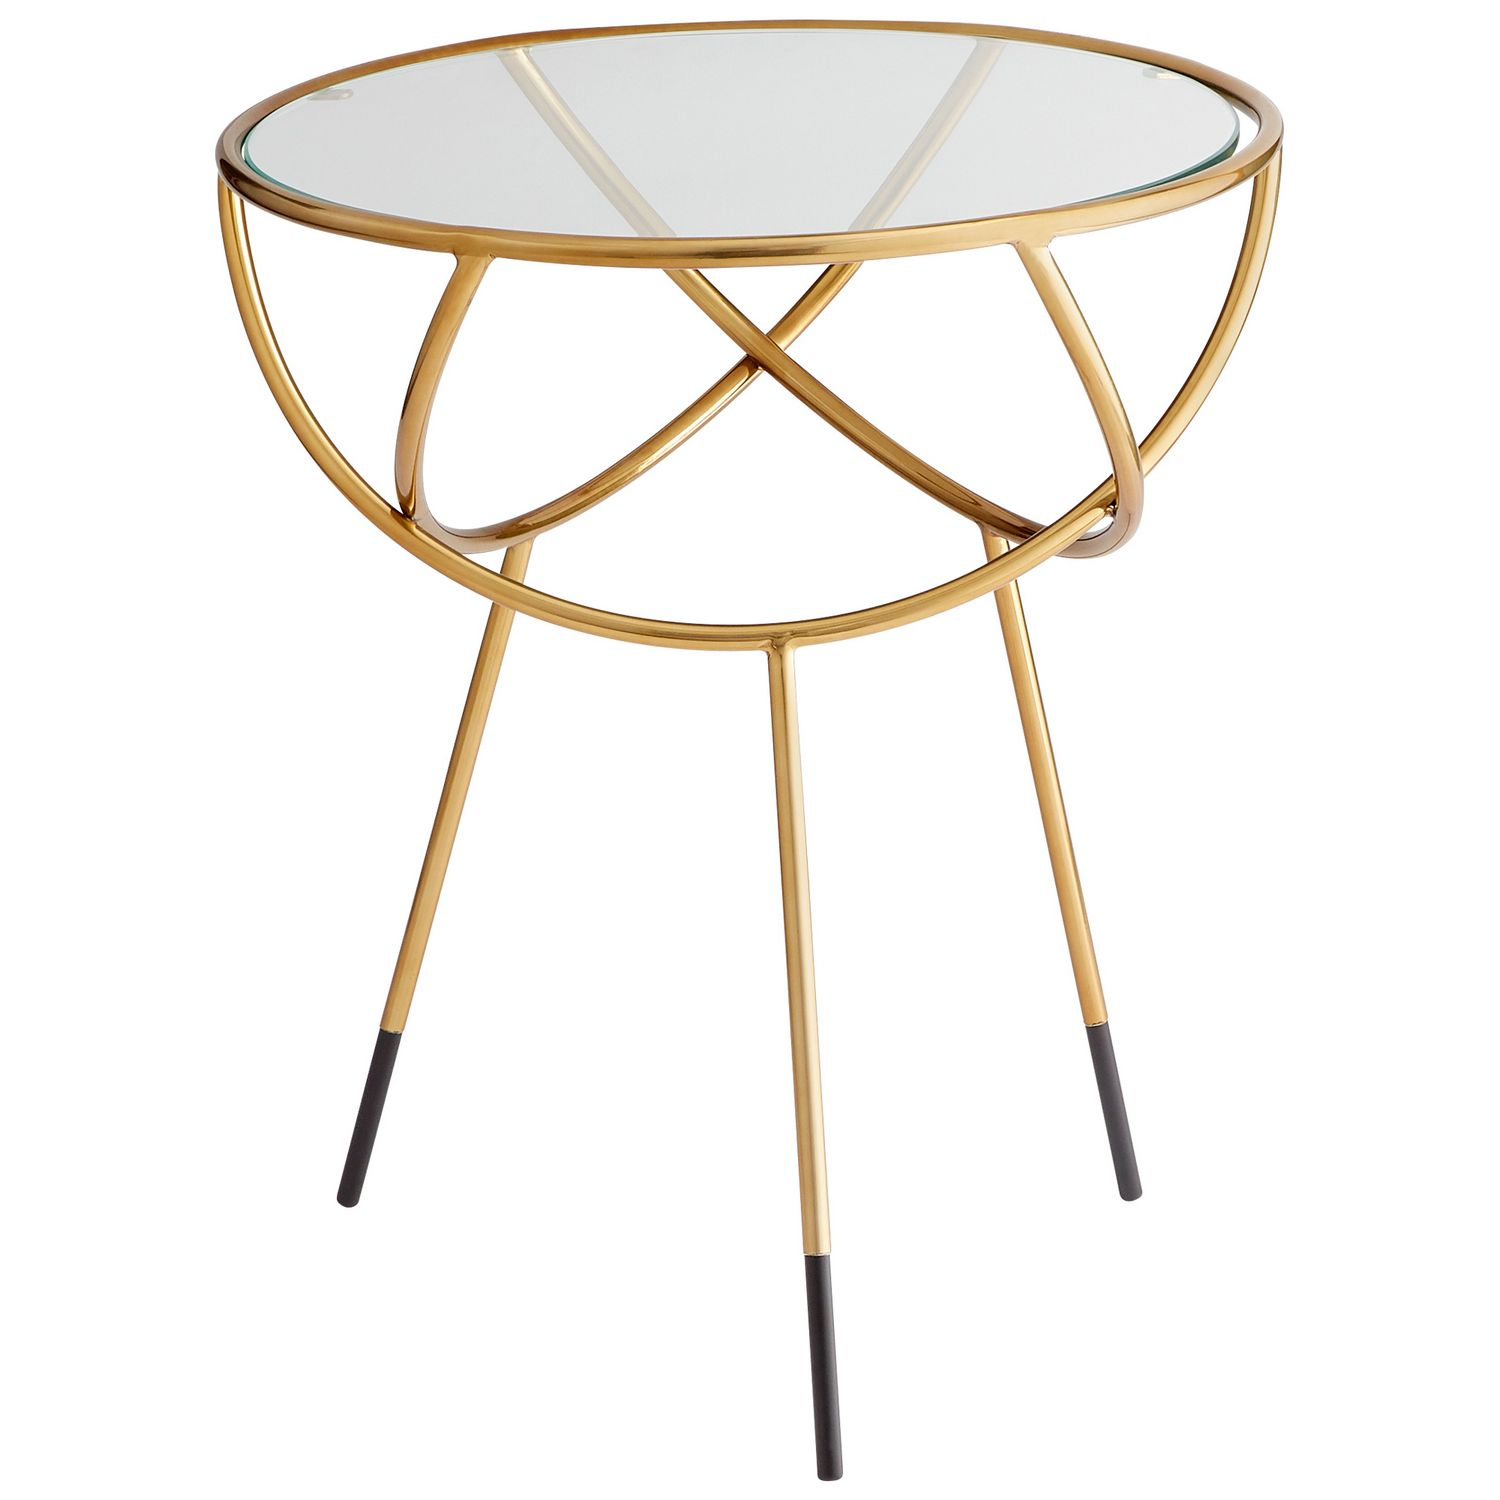 Gyroscope Side Table Cyan Design Stainless Steel Side Table Side Table [ 1500 x 1500 Pixel ]